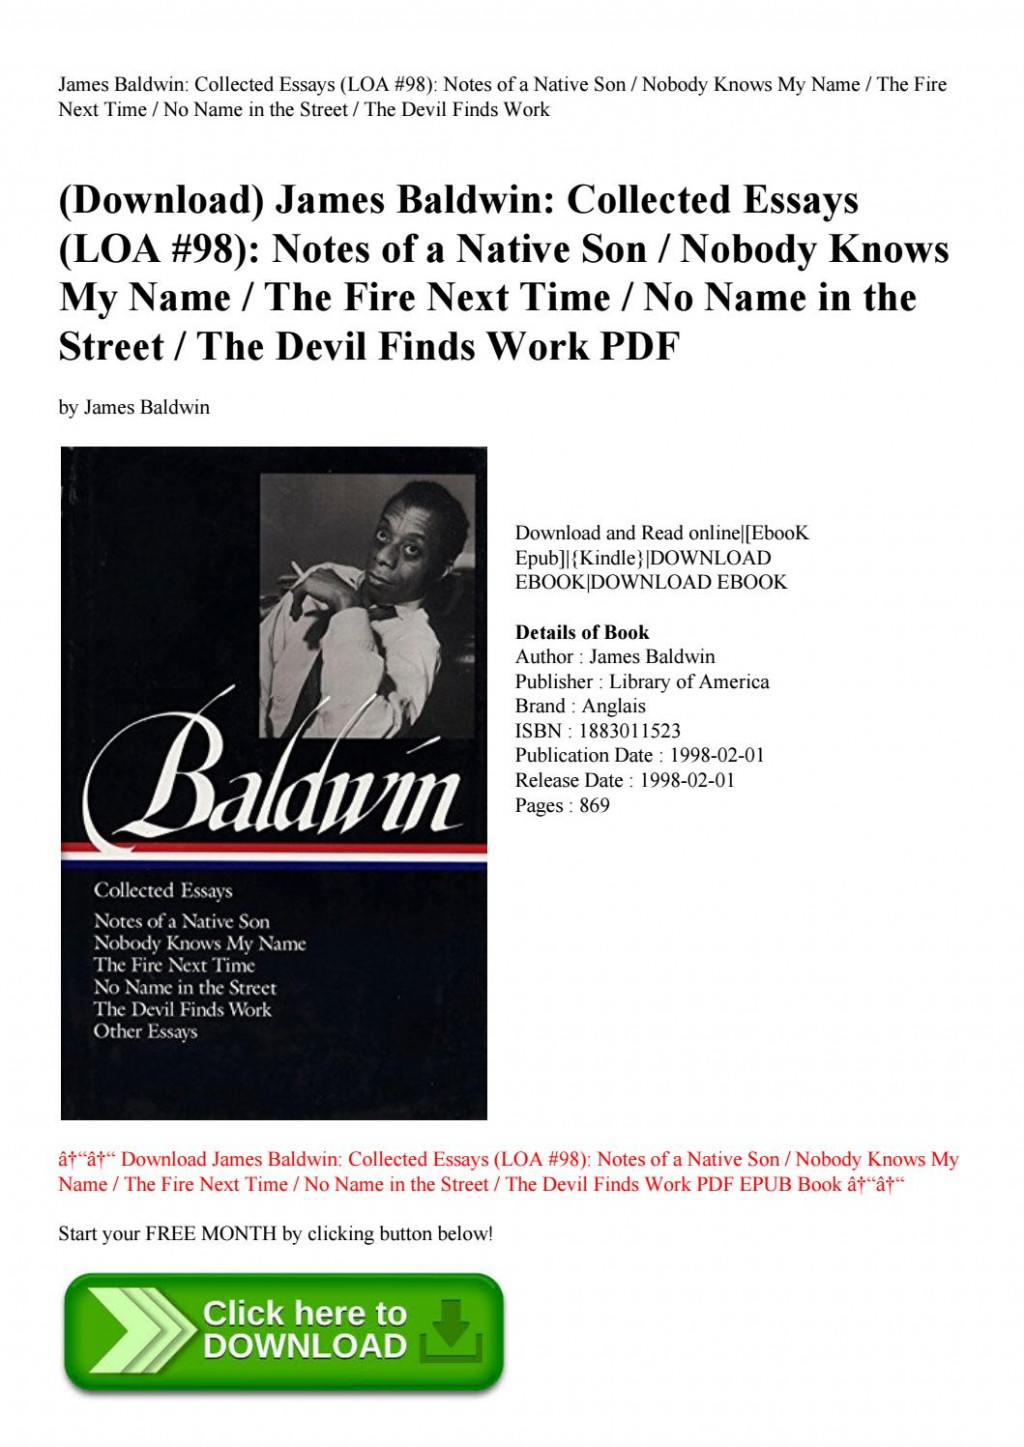 010 Page 1 Essay Example James Baldwin Collected Wondrous Essays Table Of Contents Ebook Google Books Large